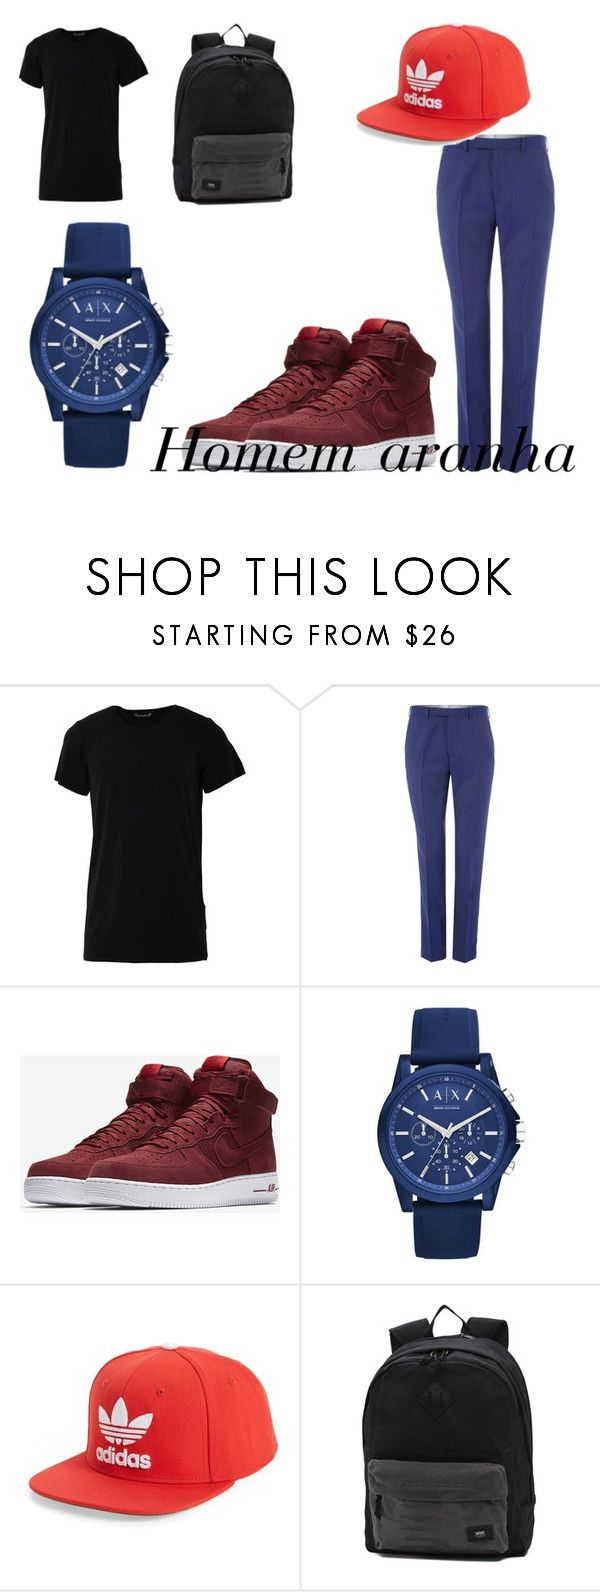 """""""Homem aranha 🖤🖤"""" by julia-clv ❤ liked on Polyvore featuring Numero00, Ted Baker, NIKE, Armani Exchange, adidas Originals, Vans, men's fashion and menswear"""